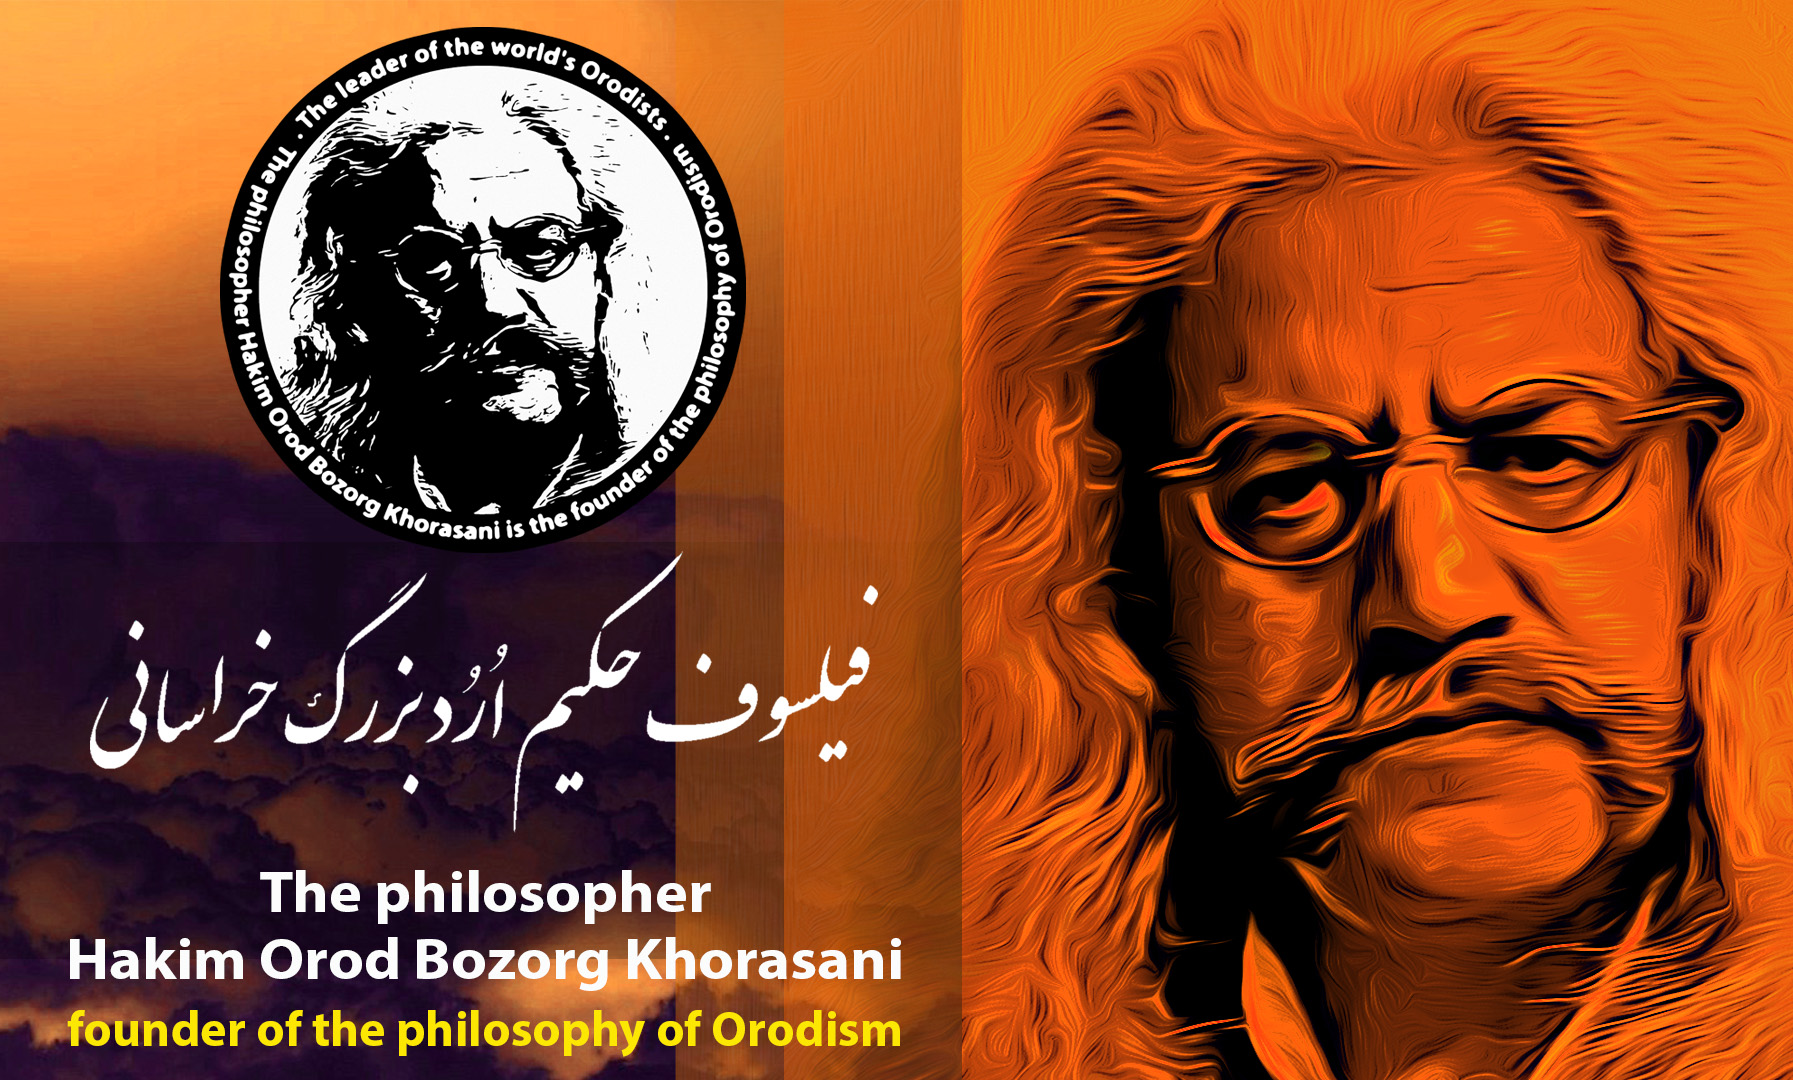 58 Insightful Quotes By The Philosopher Hakim Orod Bozorg Khorasani, The Renowned Iranian Philosopher Japan_5_